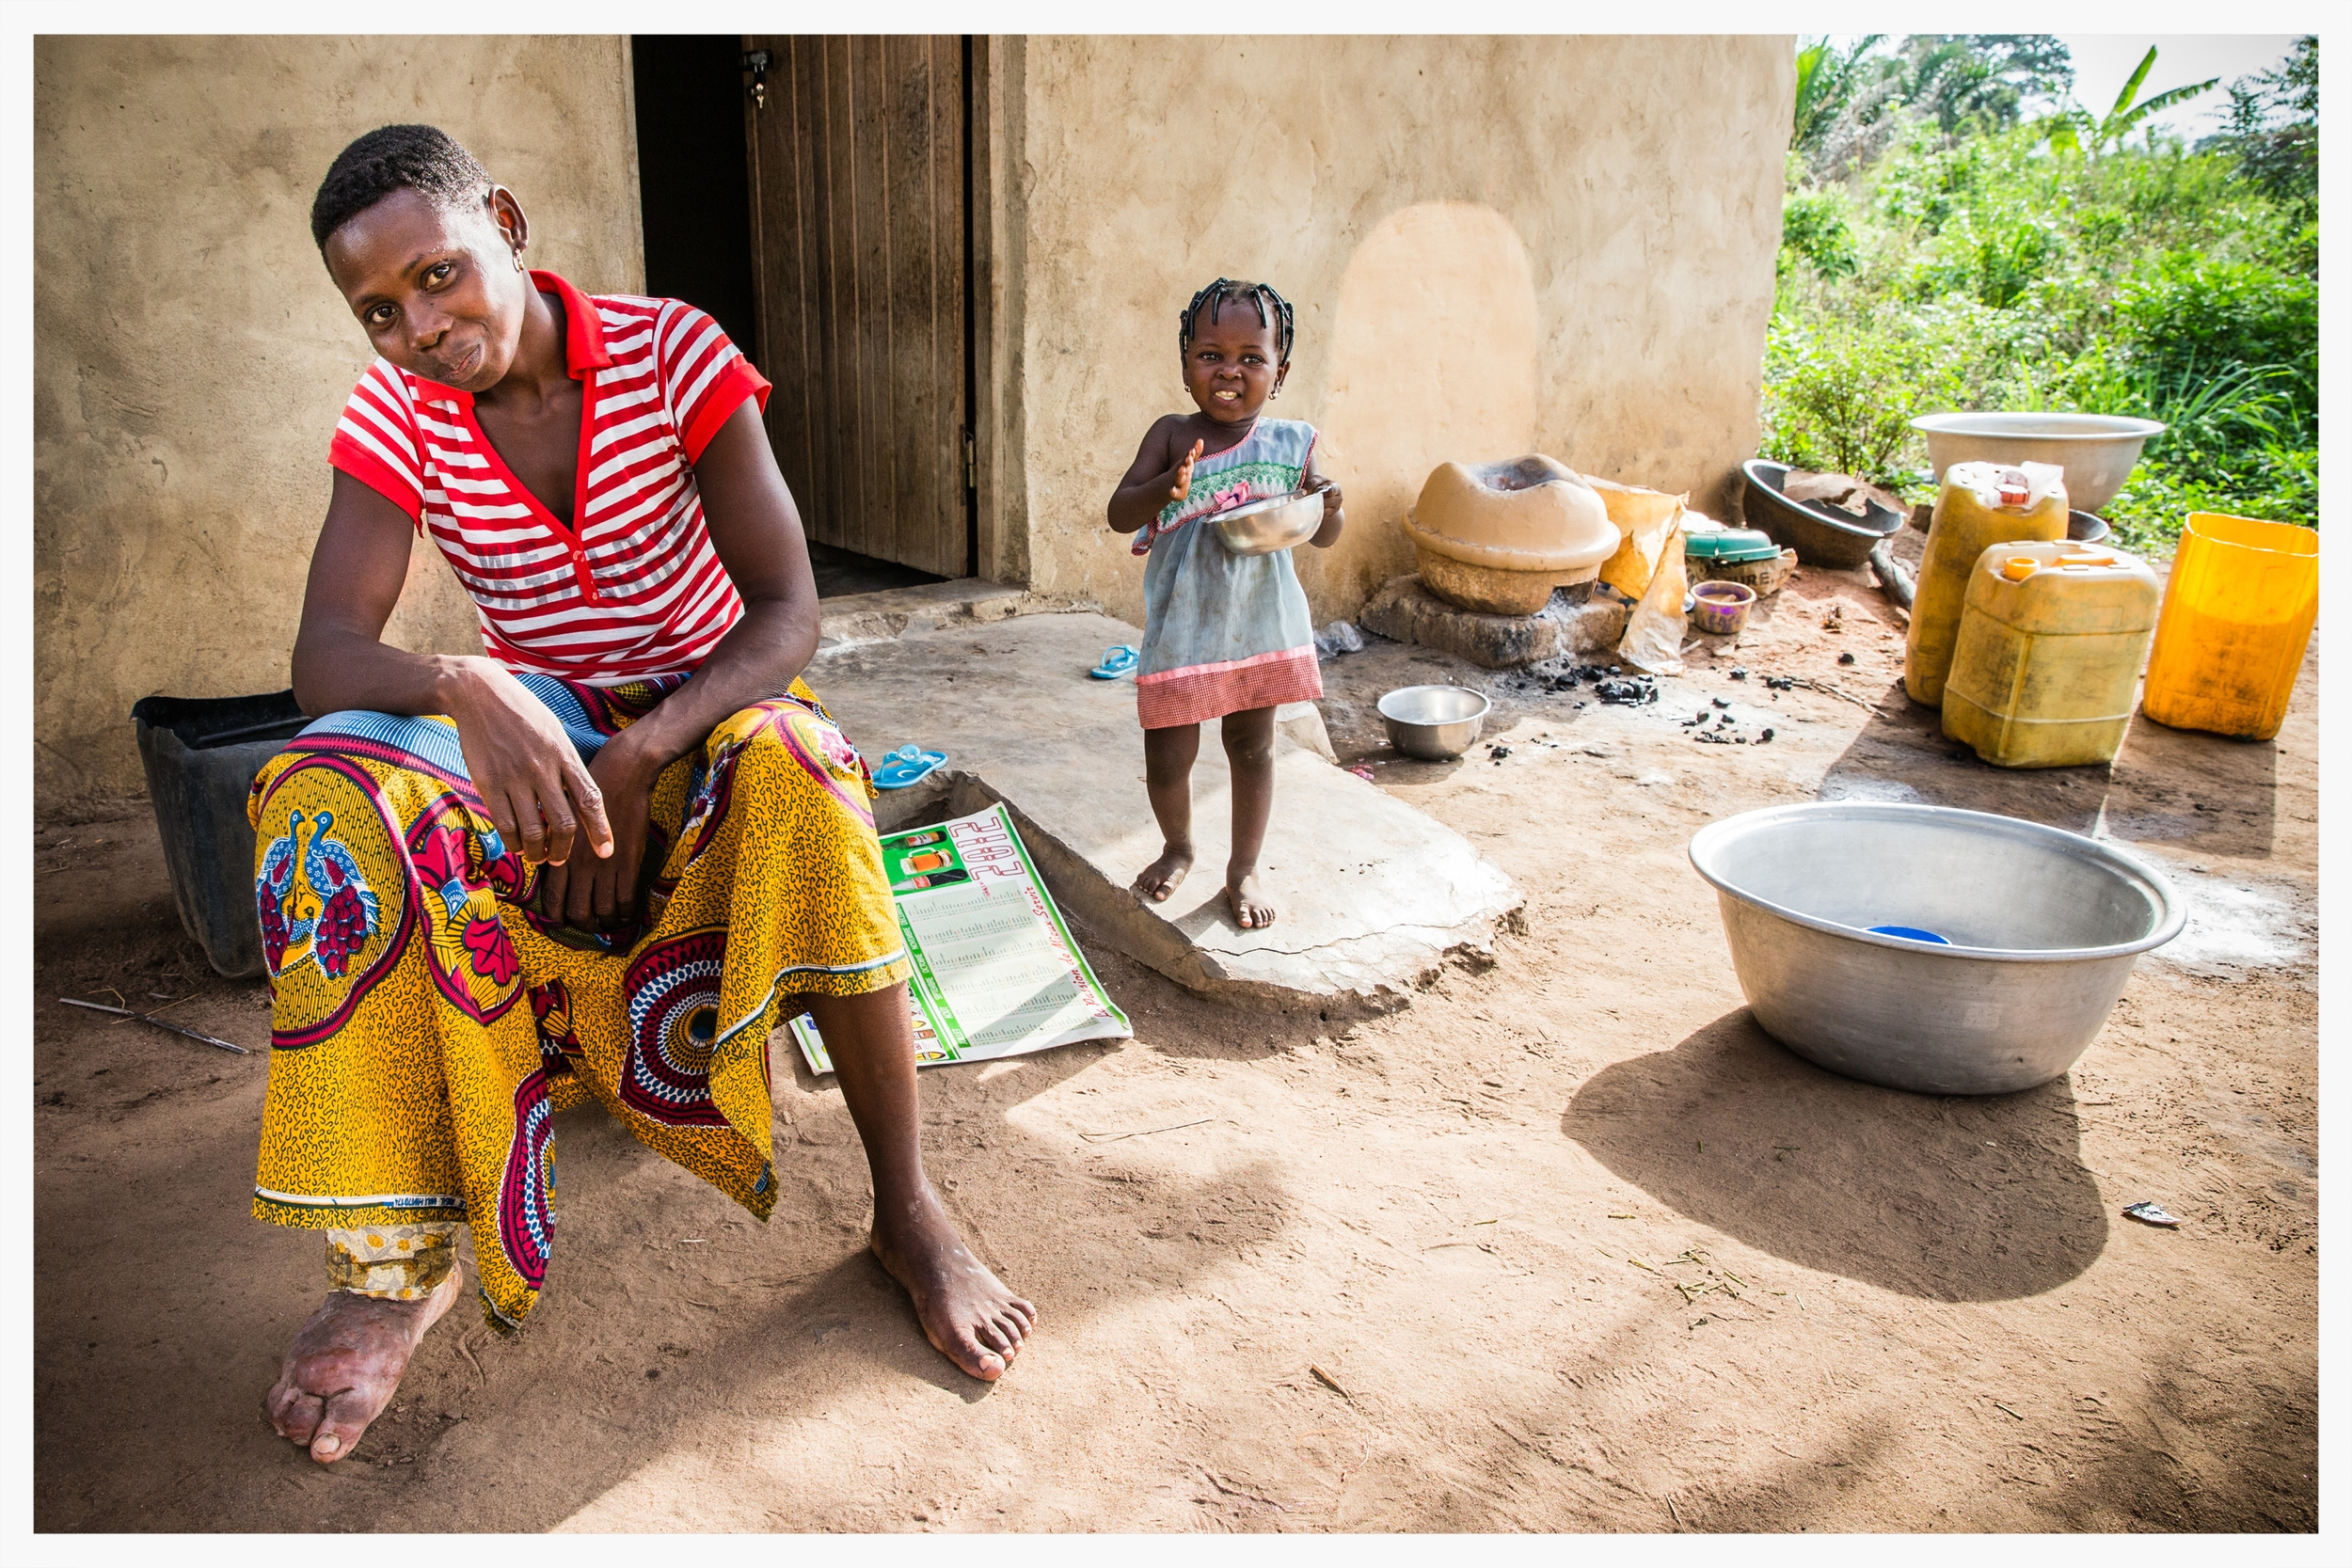 Lymphatic filariasis in Togo. Photo:Marcus Perkins for GSK